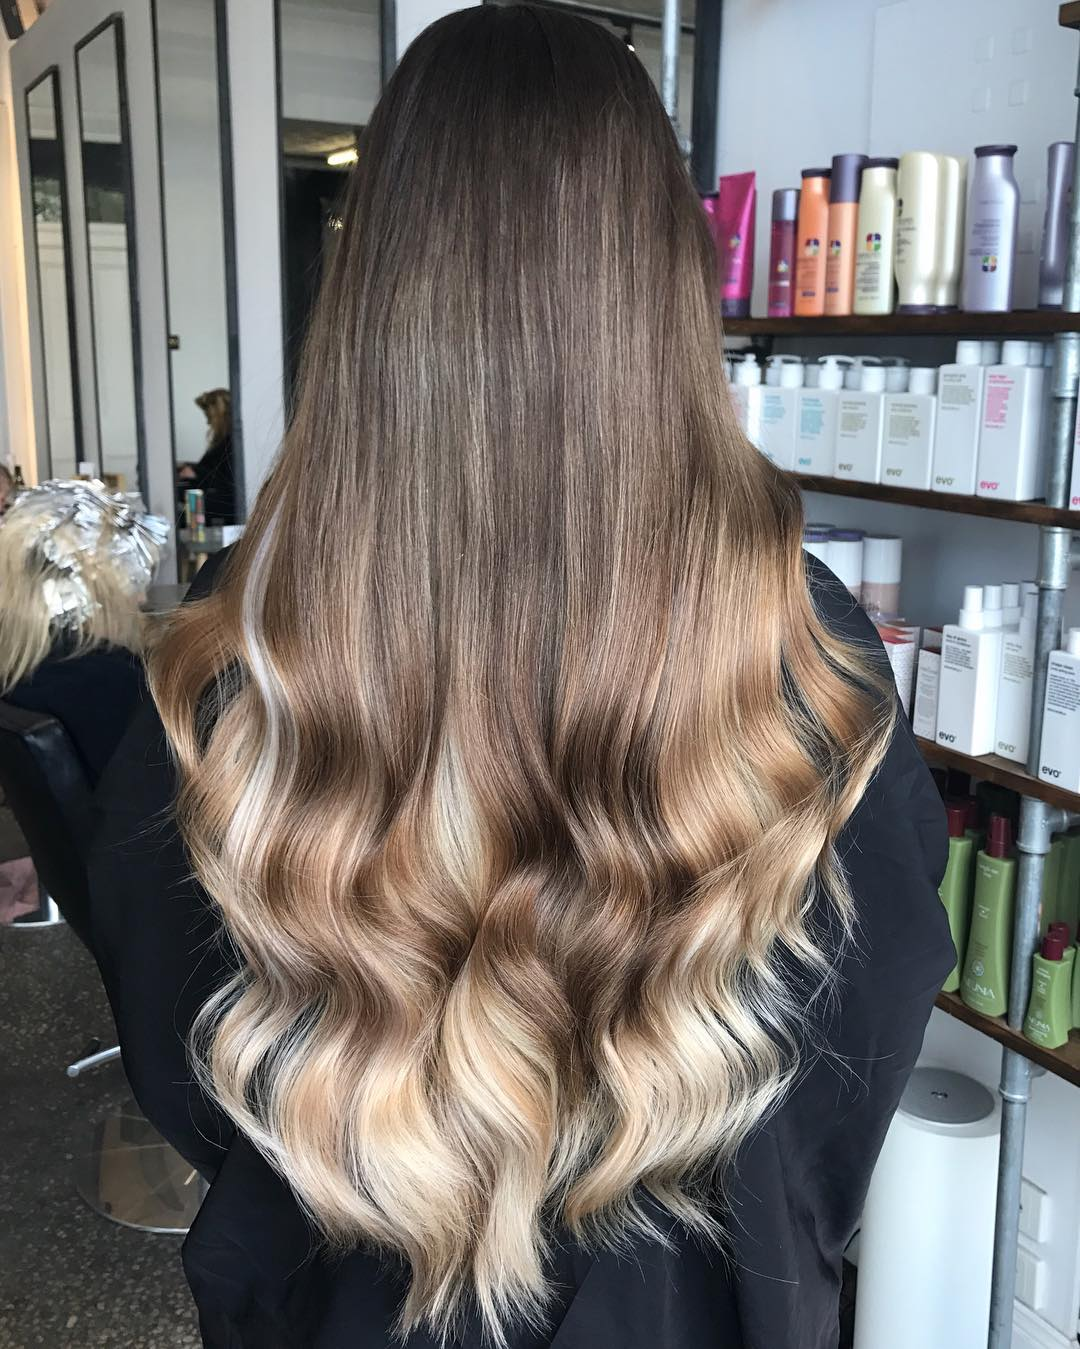 tyson-mendes-hair-gorgeous-balayage-highlights-for-long-hair